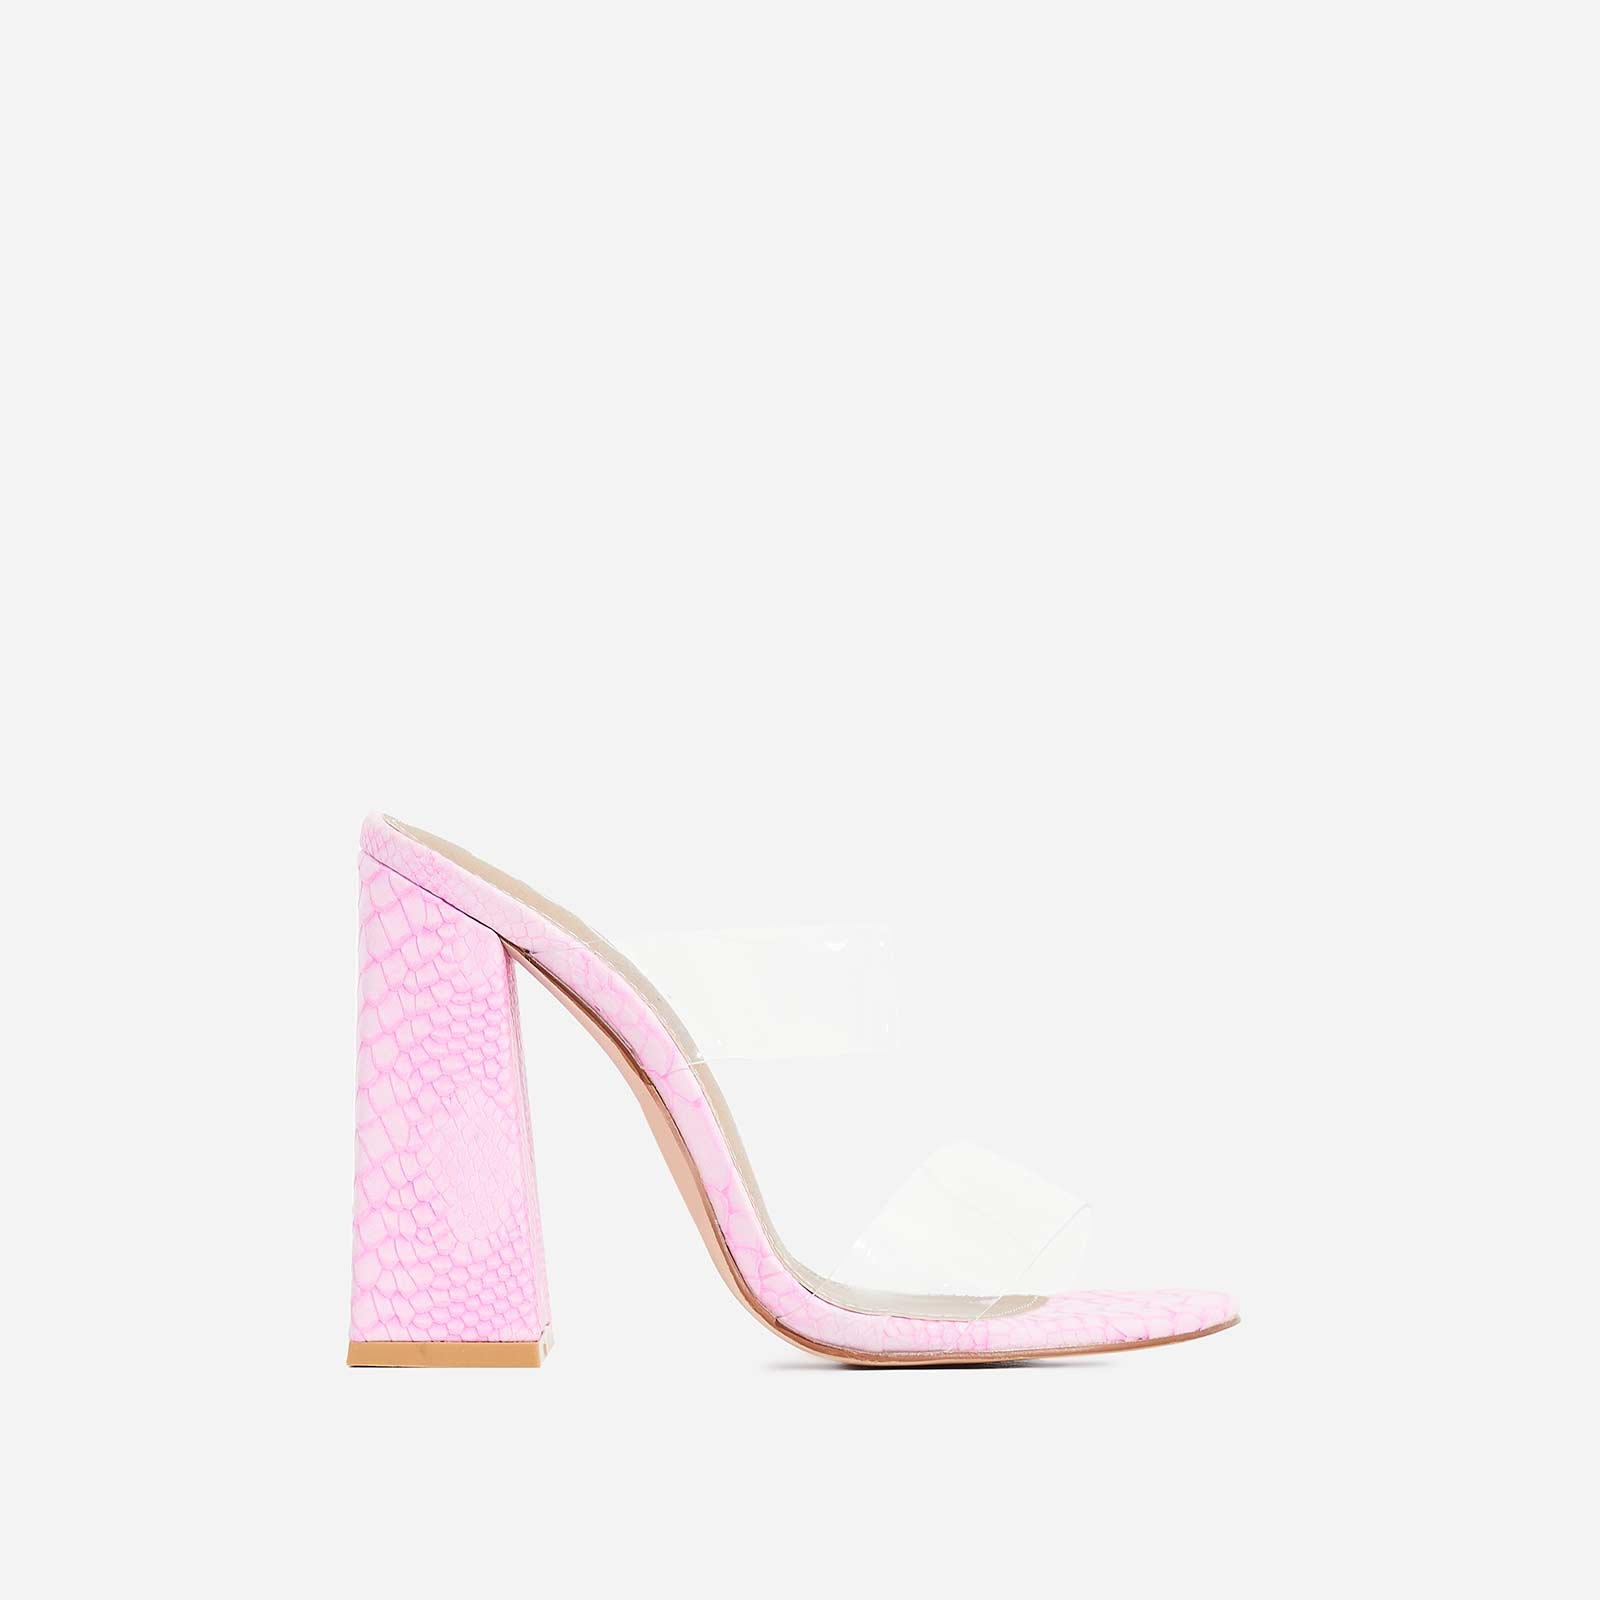 Hester Flared Block Heel Perspex Mule In Pink Snake Print Faux Leather